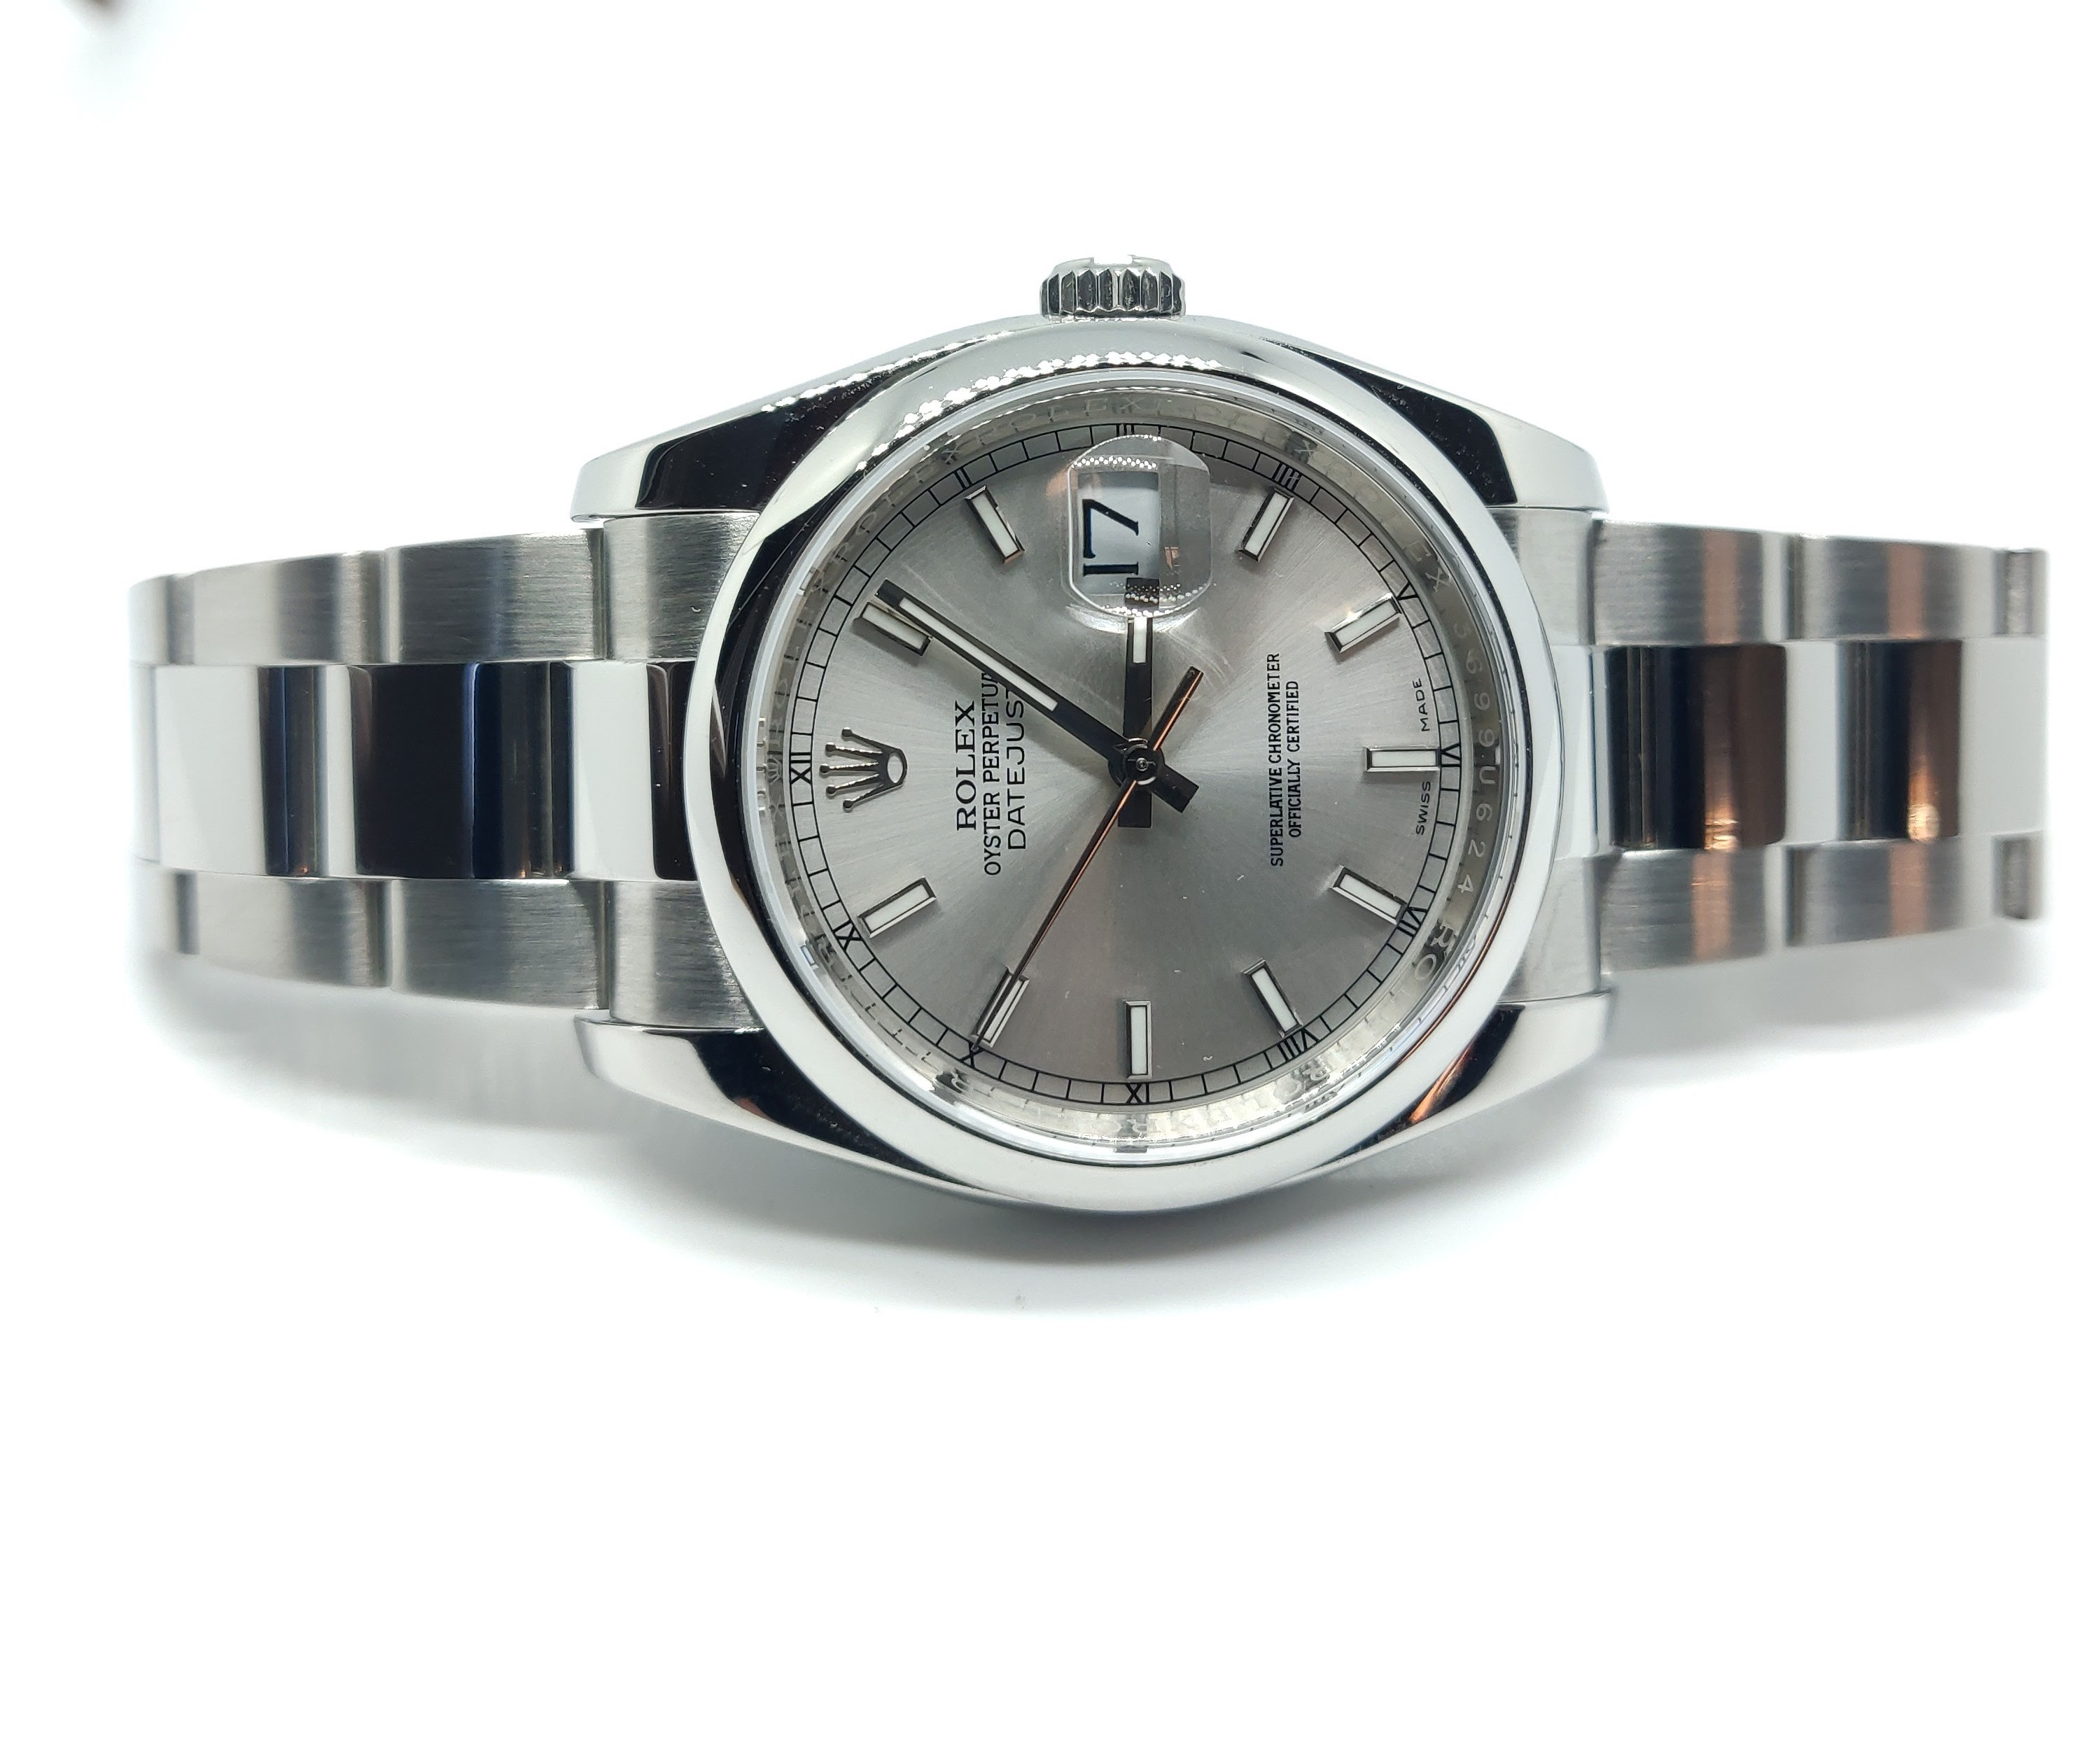 Rolex Datejust 36 With Silver Dial – 116200